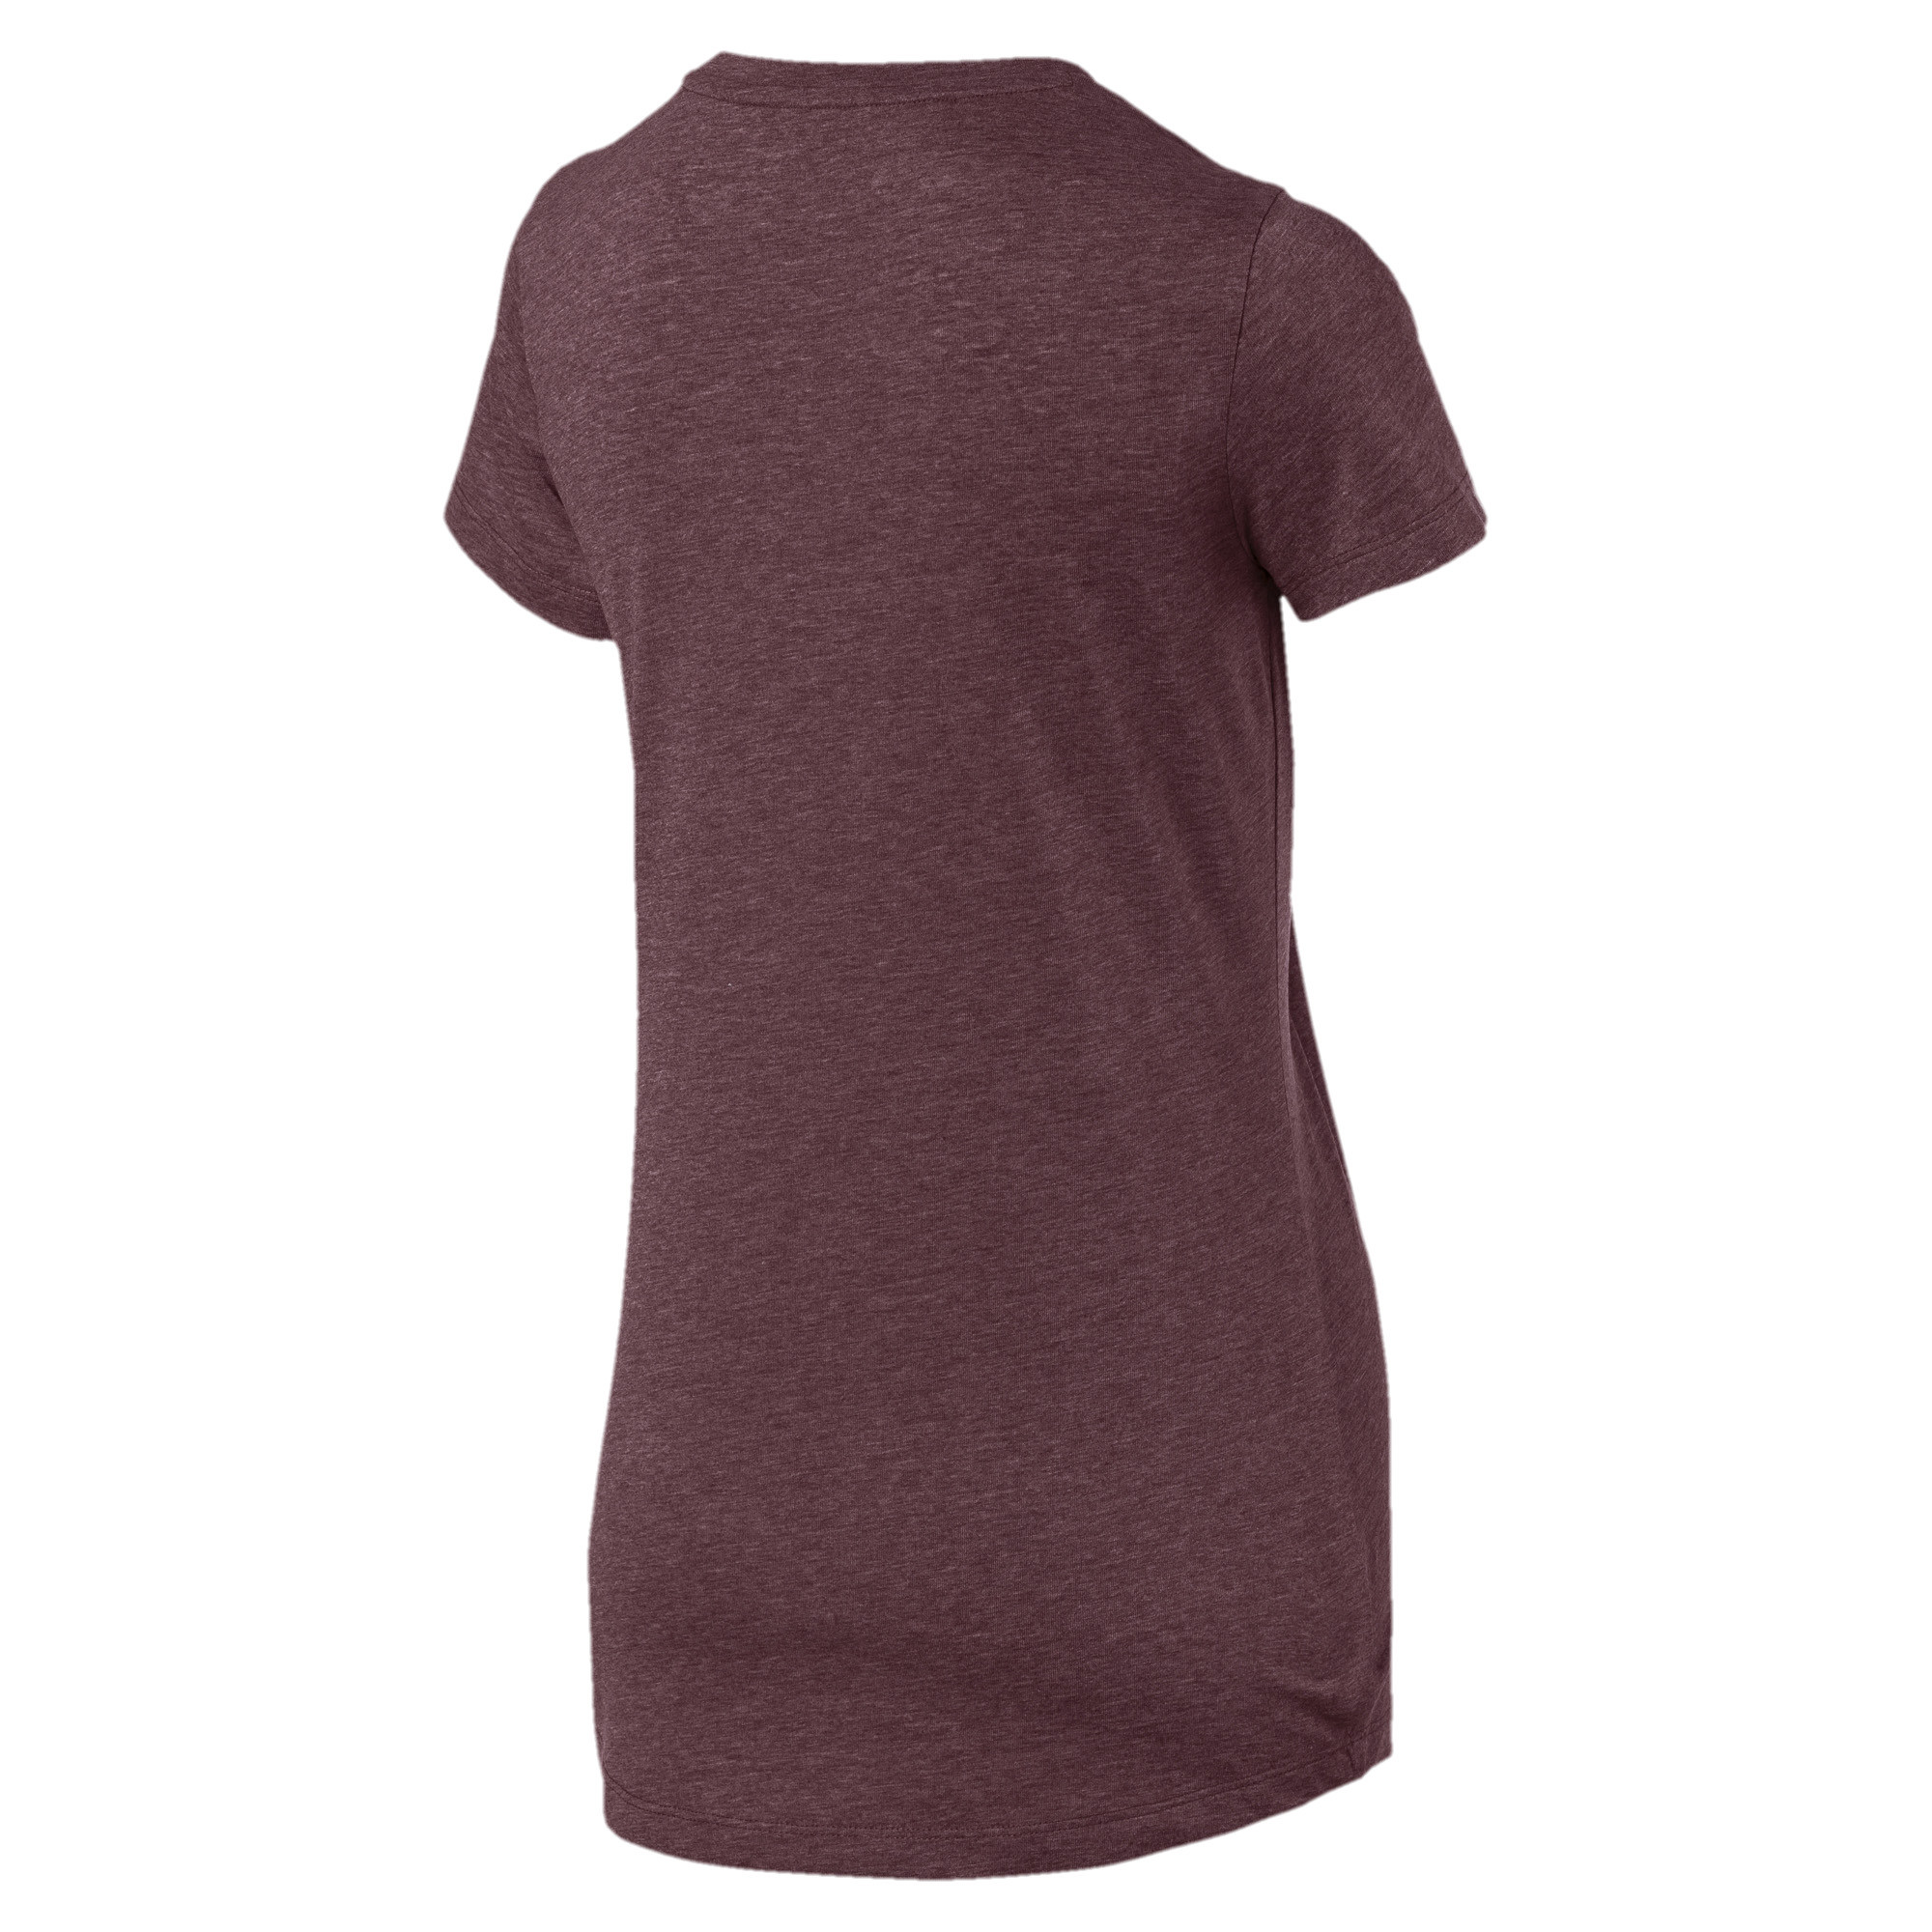 PUMA-Essentials-Women-039-s-Heather-Tee-Women-Tee-Basics thumbnail 22